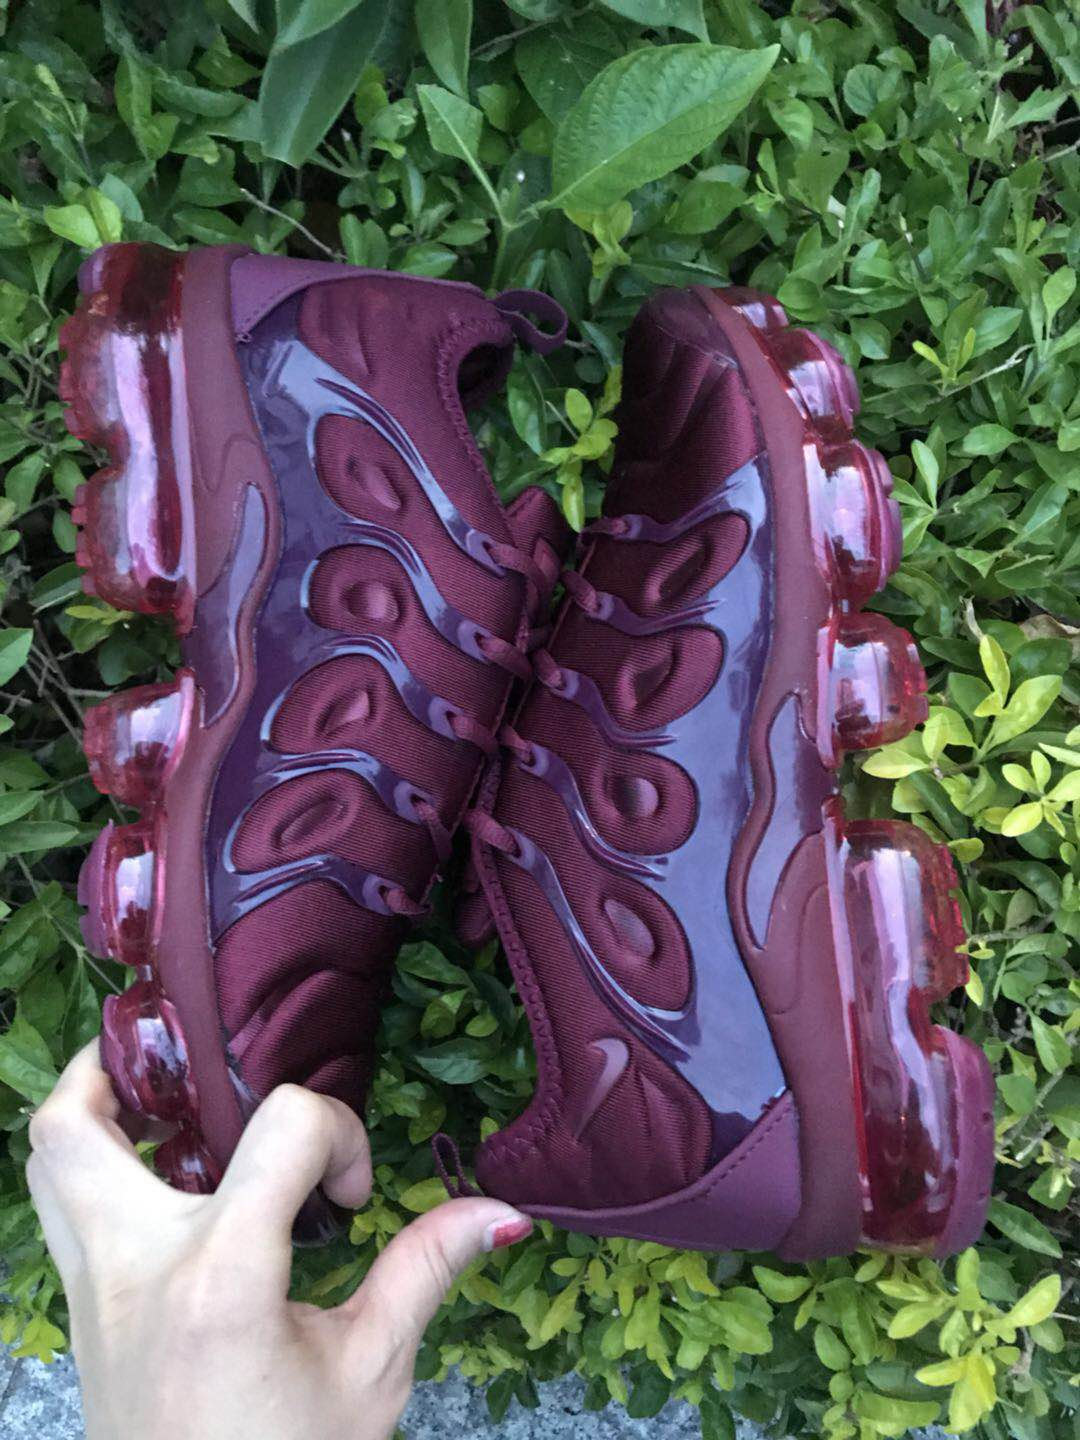 Nike Air Vapormax Plus 2018 TN Wine Red Black Shoes